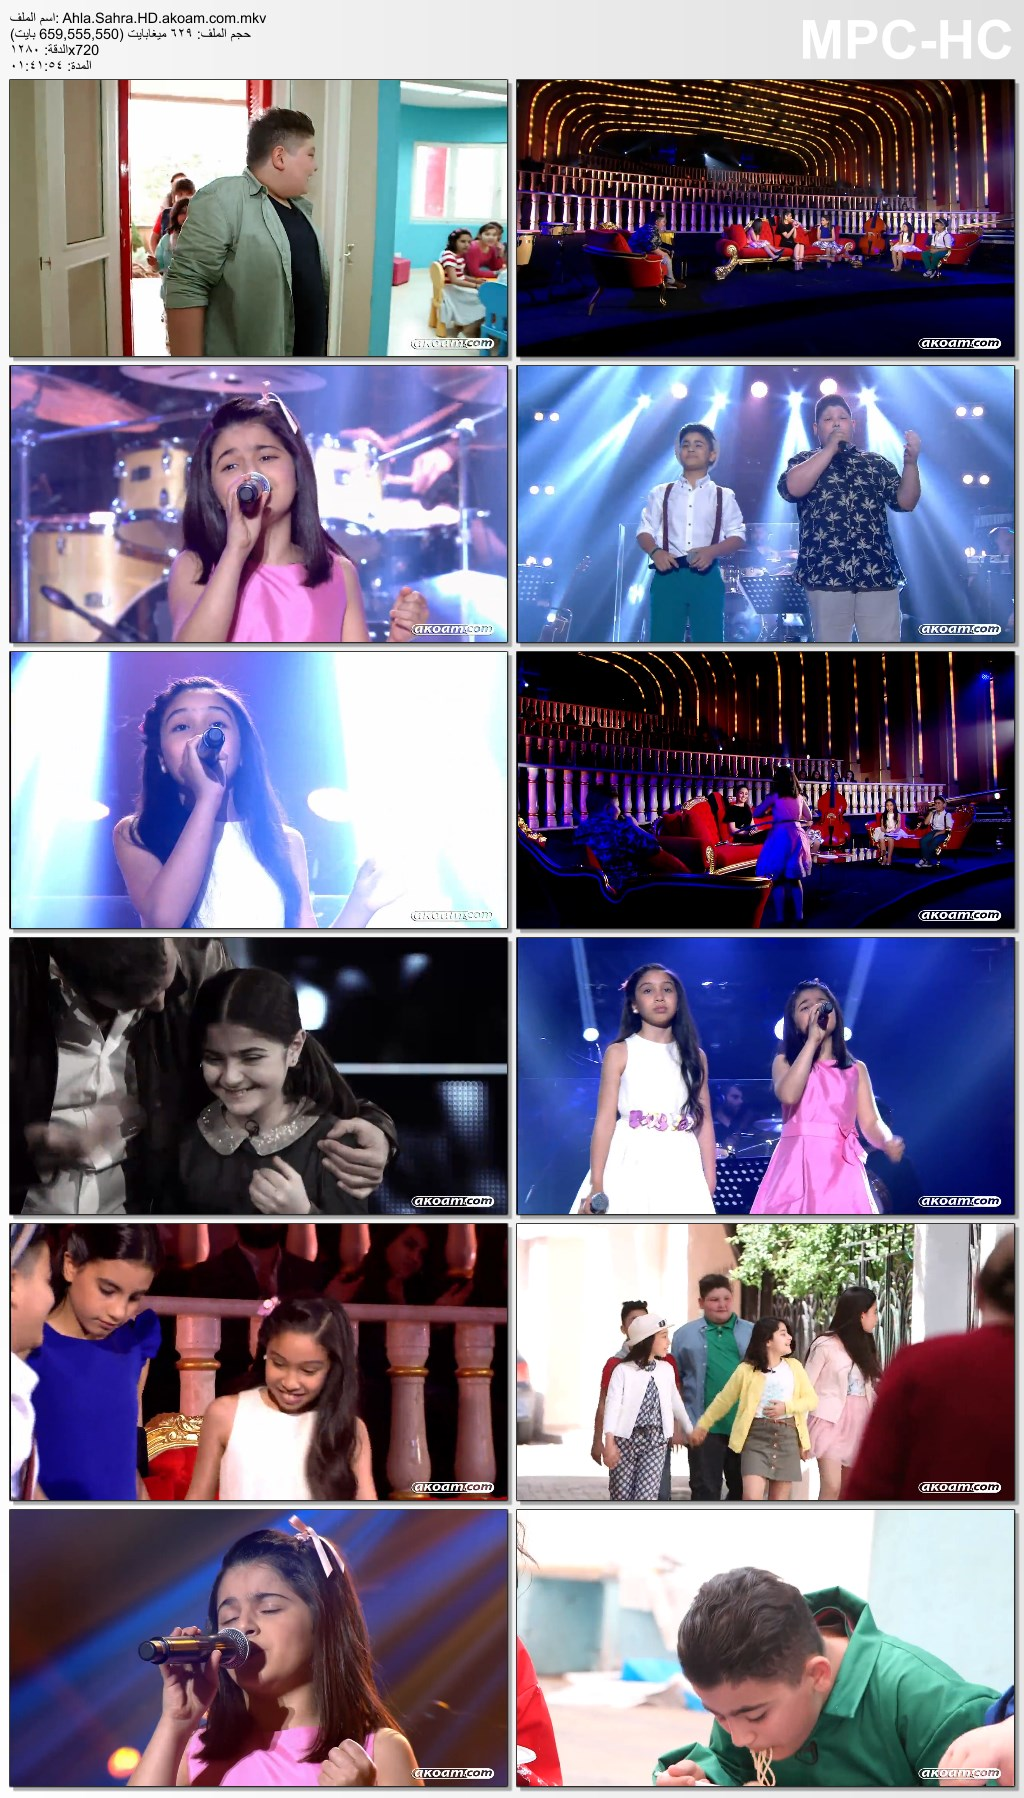 the voice kids,احلي سهرة,ذا فويس كيدز